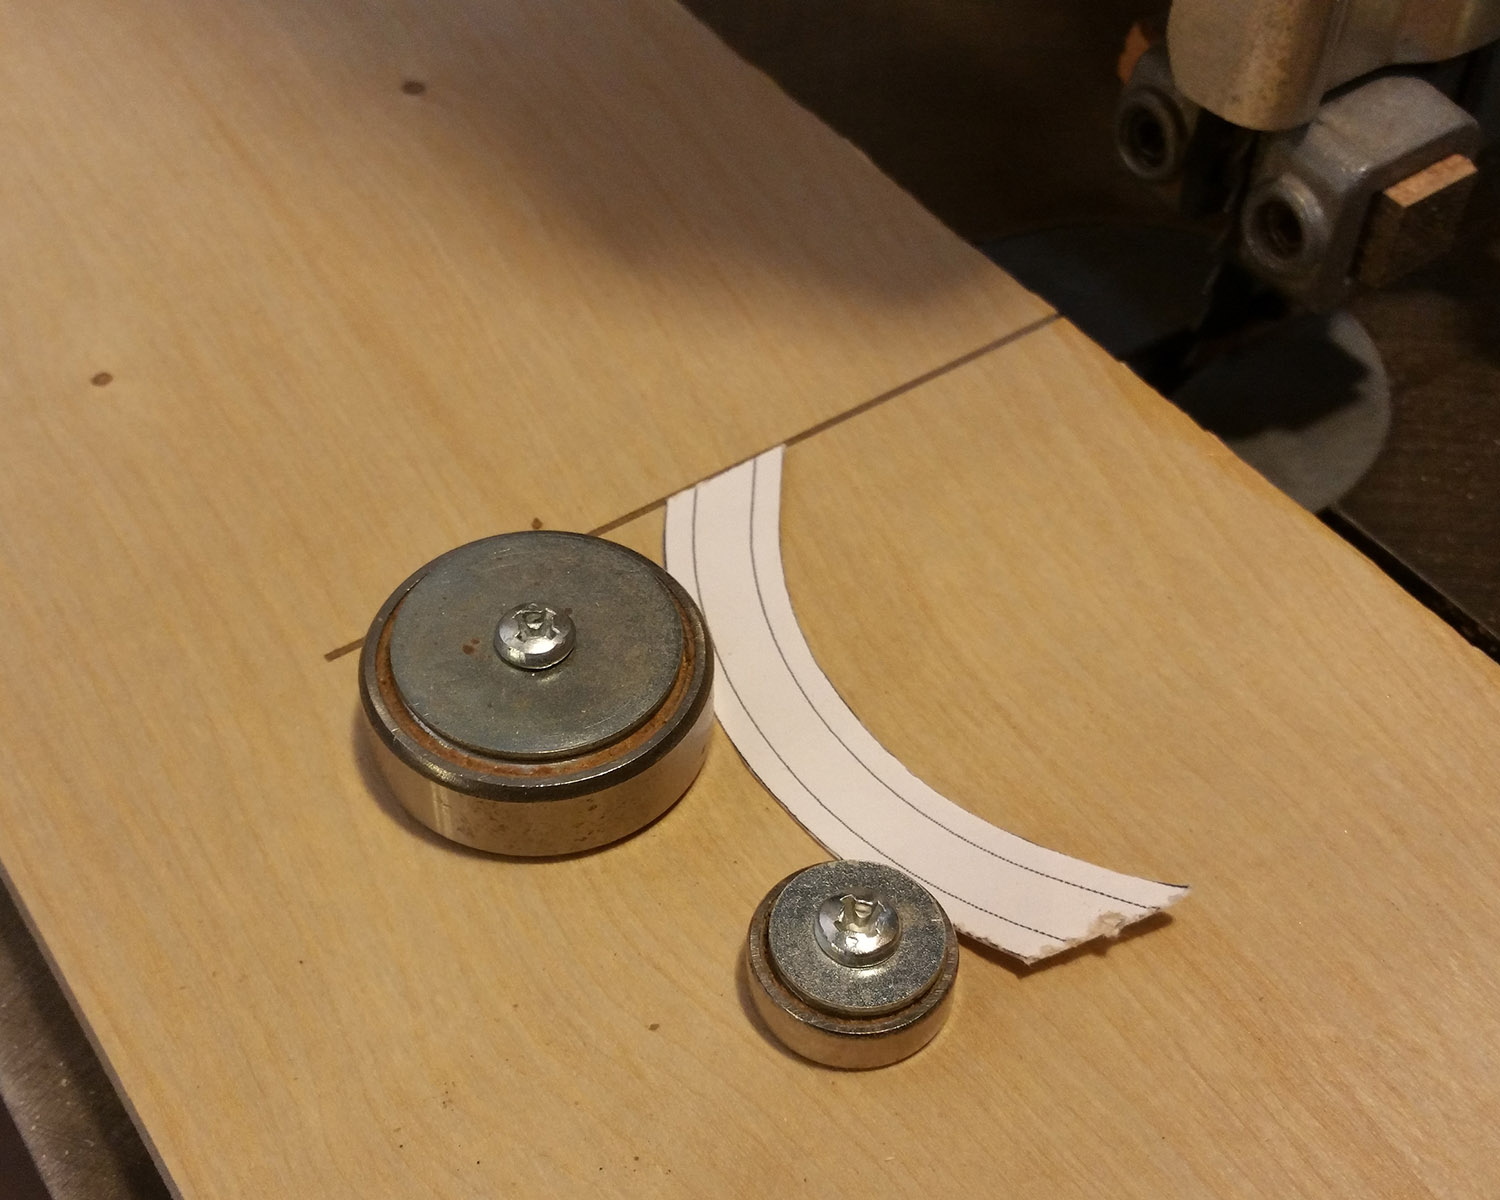 Use router bearings or other discs, and allow room for adjustment when screwing them down.